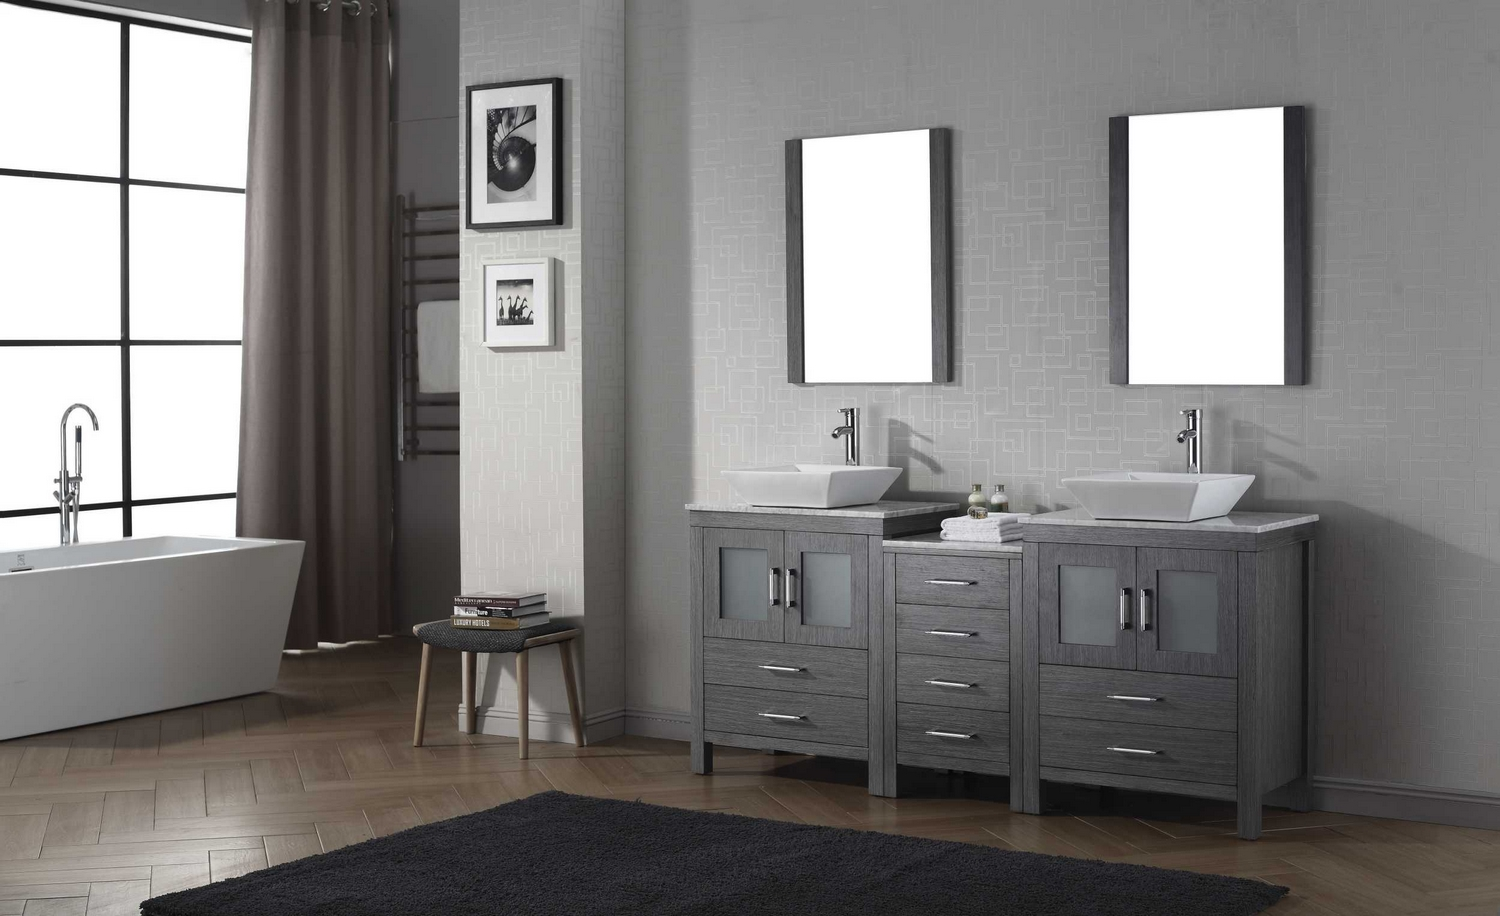 Virtu USA Dior 66  Double Bathroom Vanity Cabinet Set in Zebra Grey br Virtu USA Dior 66  Double Bathroom Vanity Cabinet Set in Zebra  . 66 Double Sink Vanity. Home Design Ideas